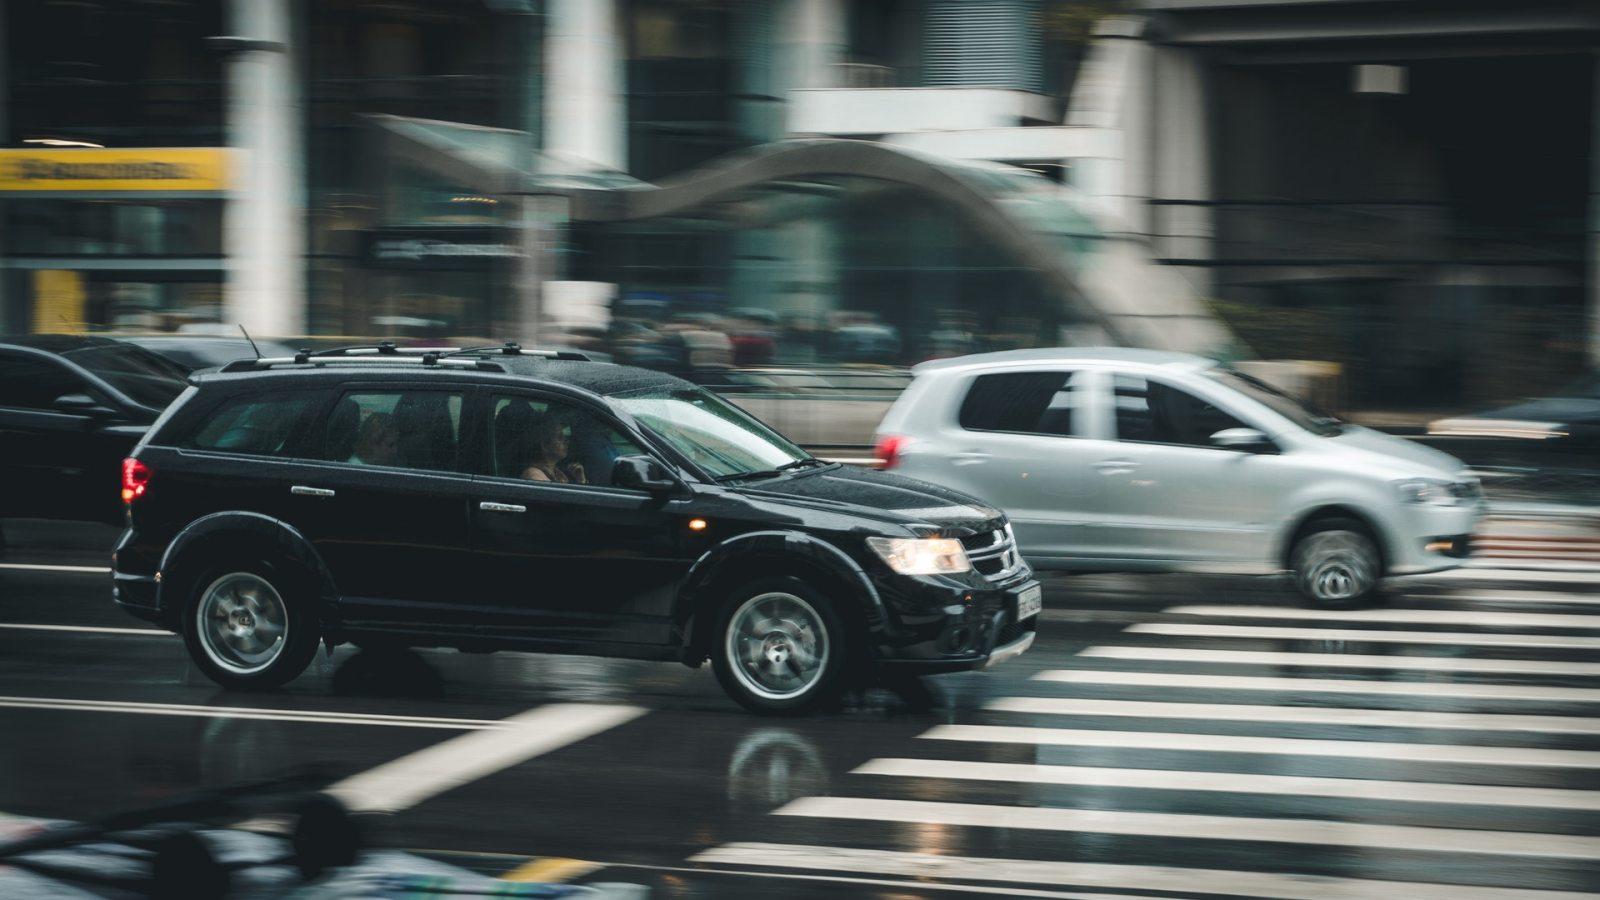 Three Reasons to Not Delay Pursuing Compensation for Car Accident Injuries